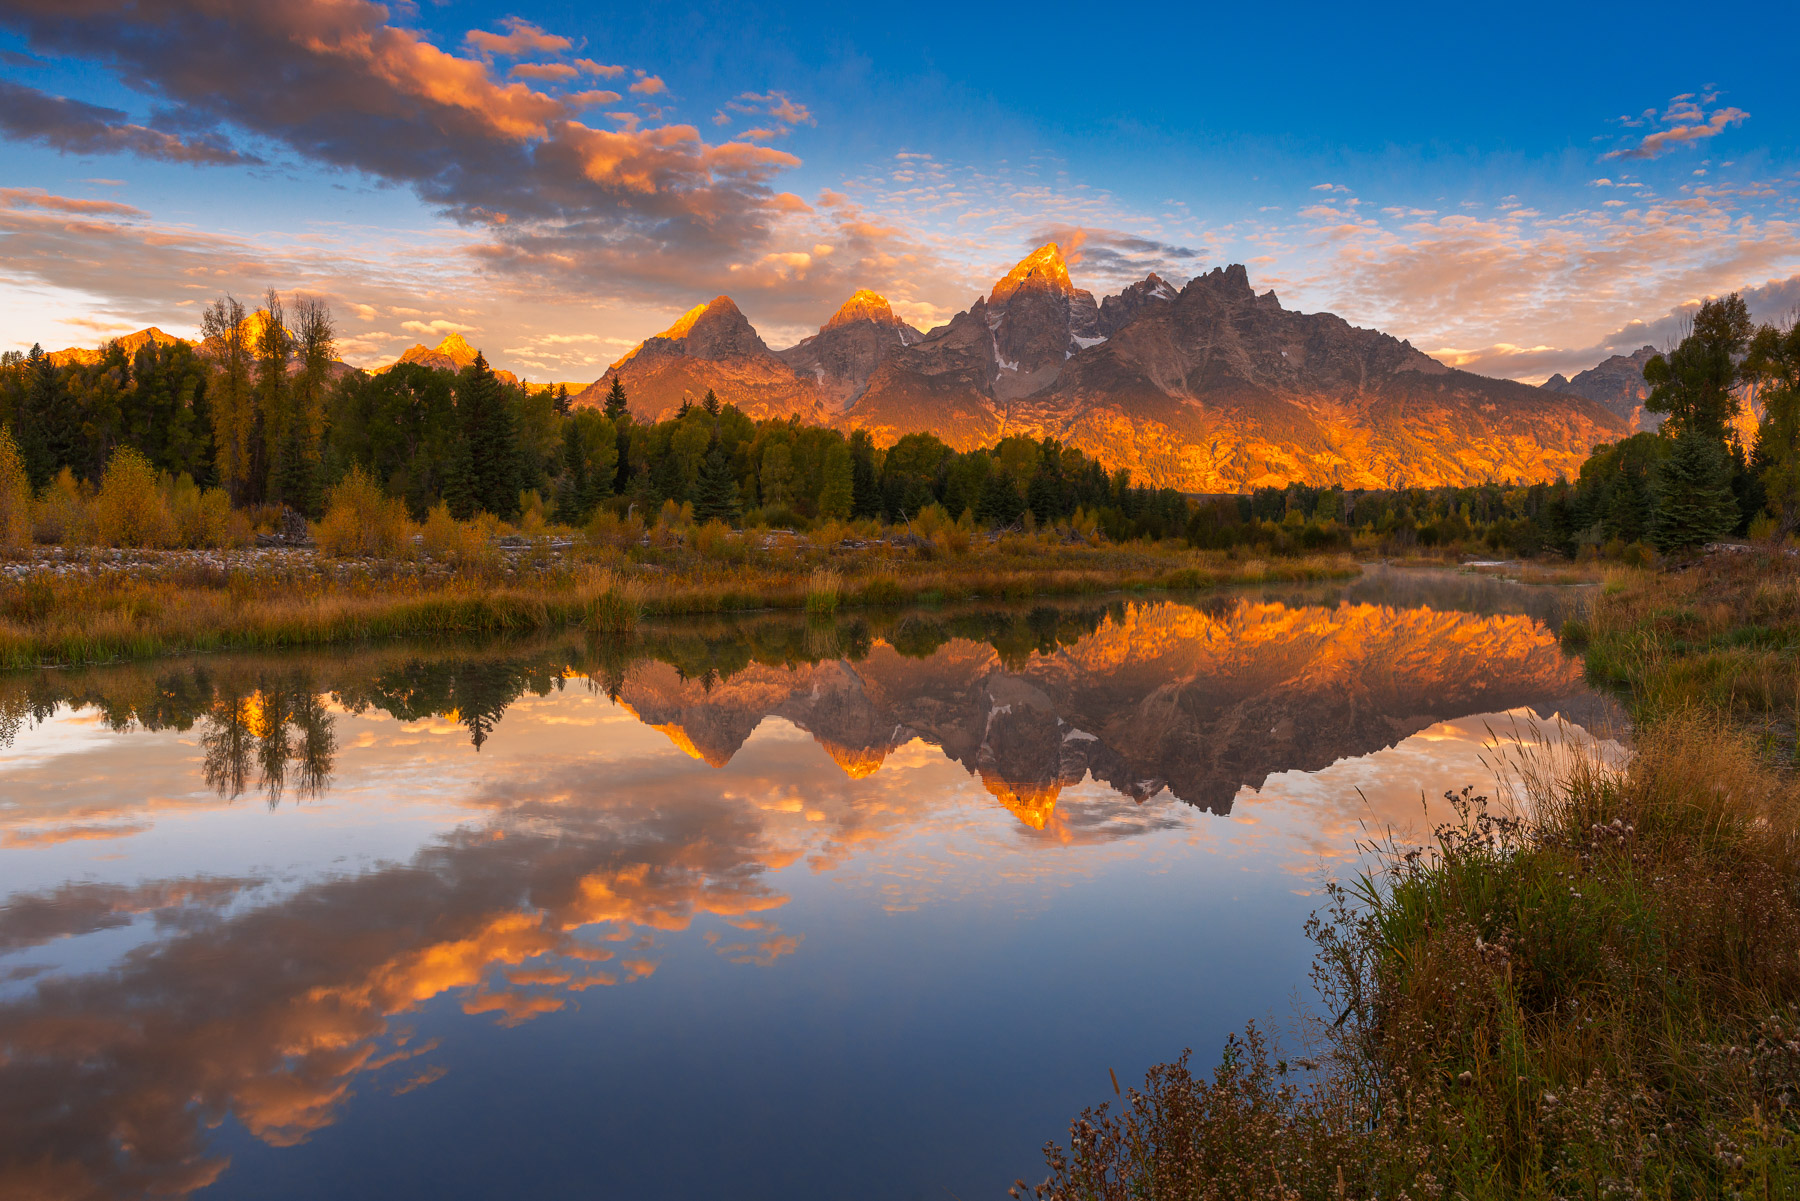 The Teton Range at sunset reflected in the still waters of Schwabacher Landing on the Snake River.